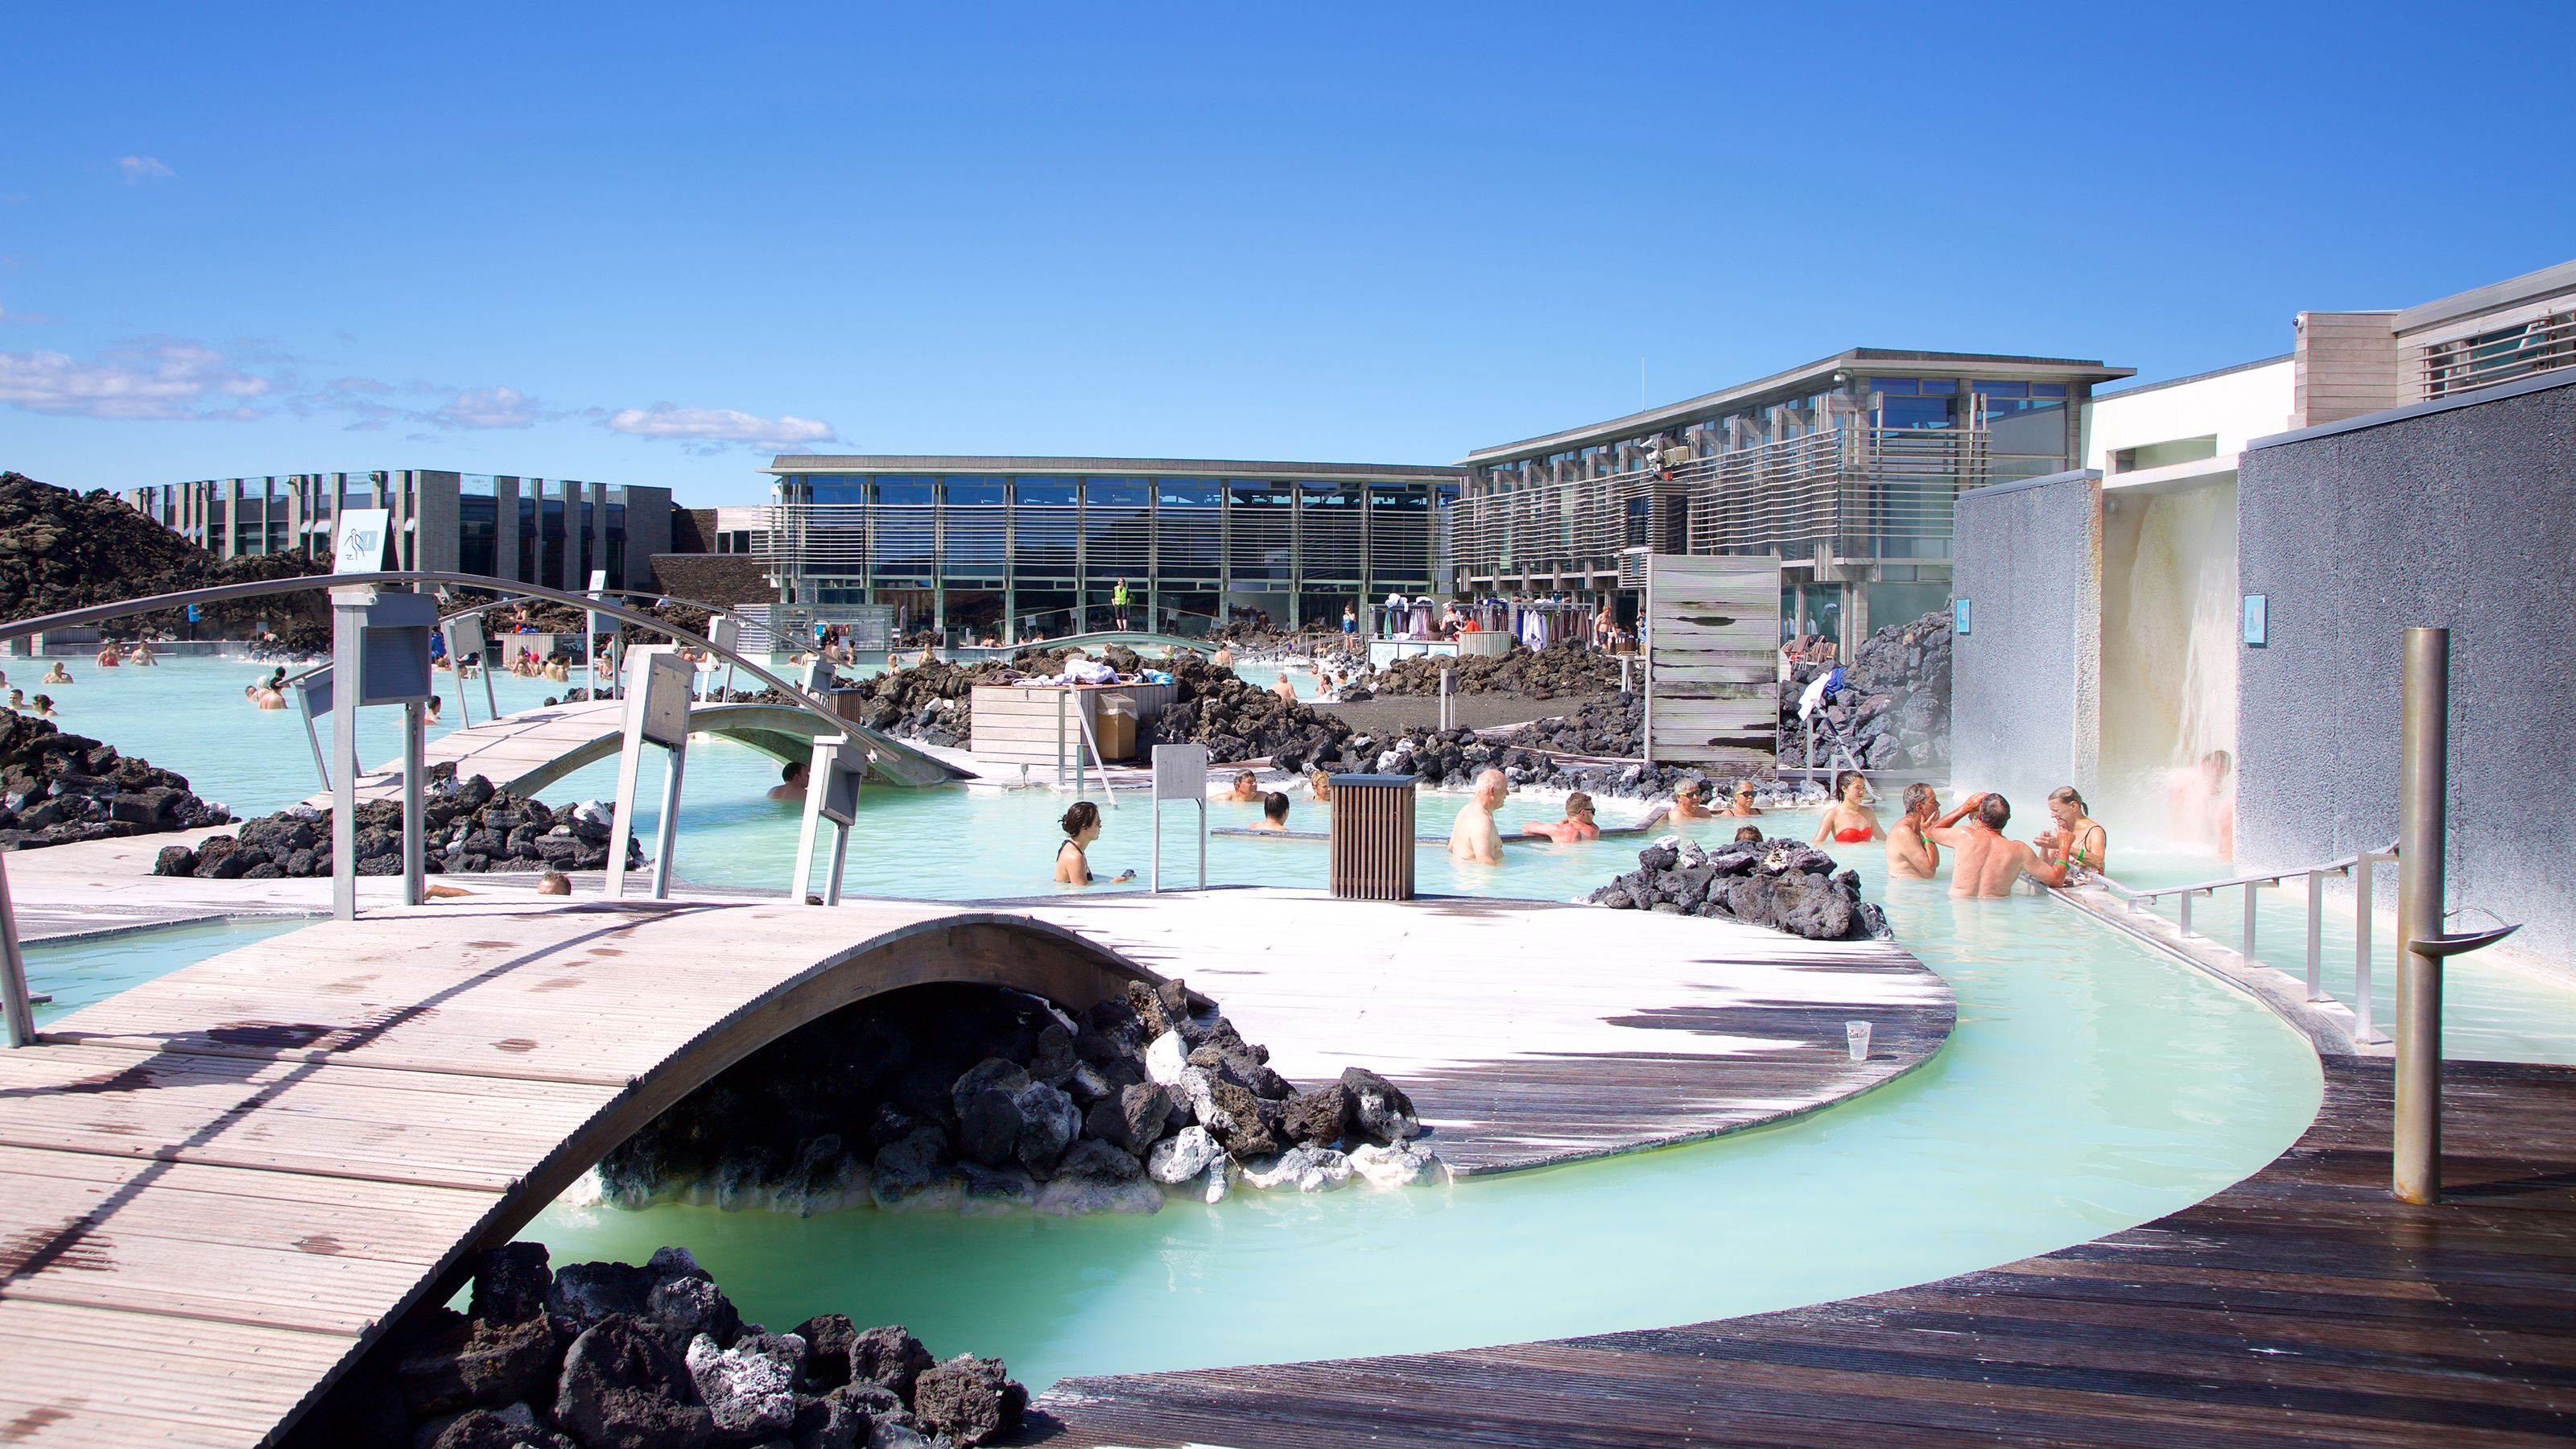 Flexible Bus Transfers between Reykjavik & the Blue Lagoon